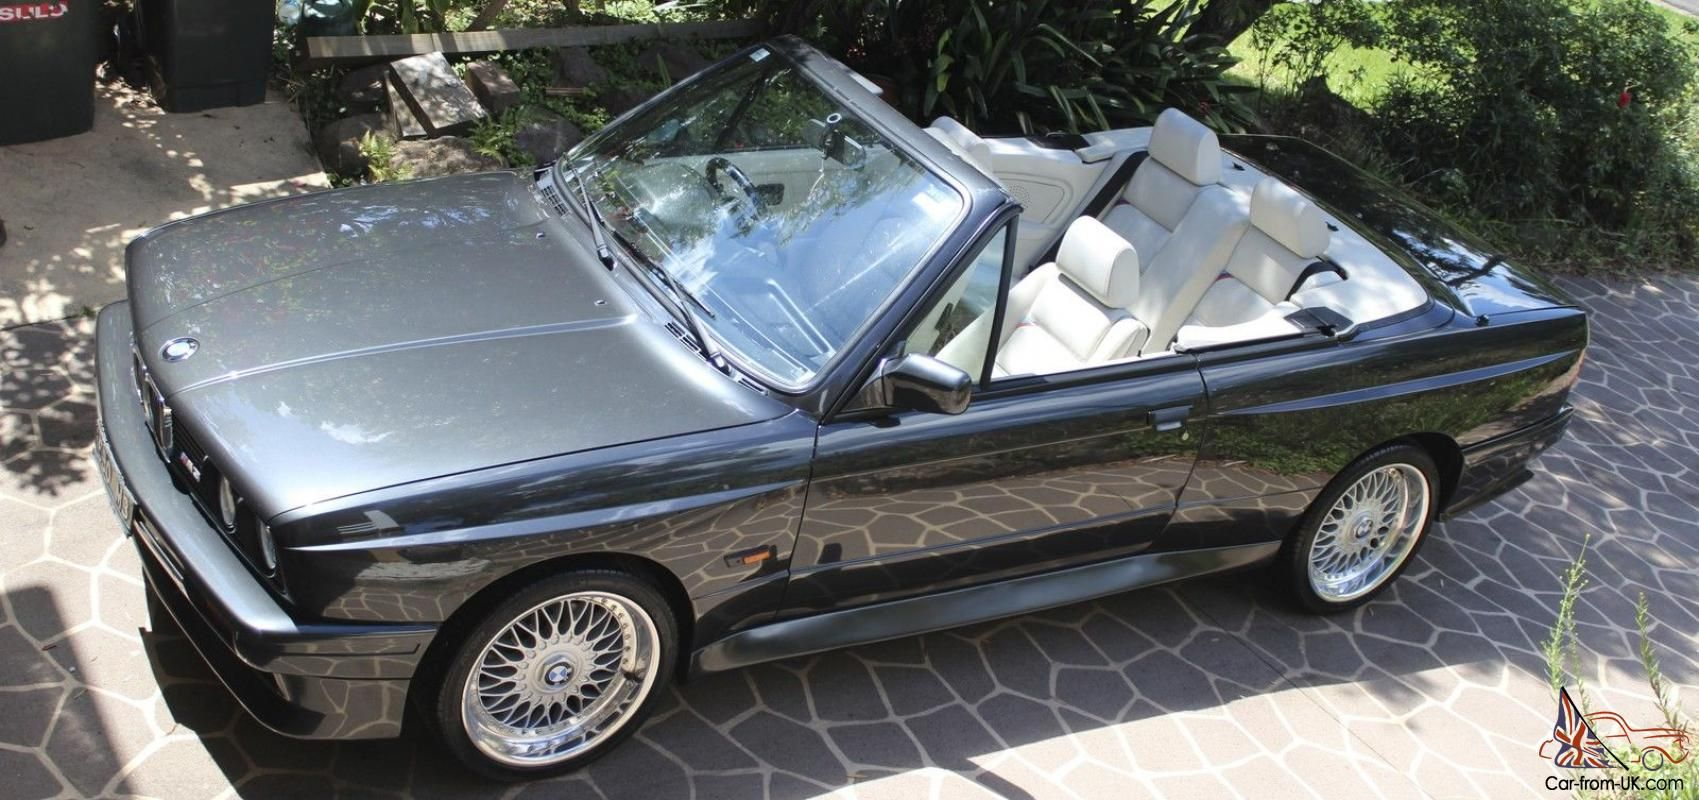 1991 bmw e30 m3 convertible motor bikes and motor stuff. Black Bedroom Furniture Sets. Home Design Ideas